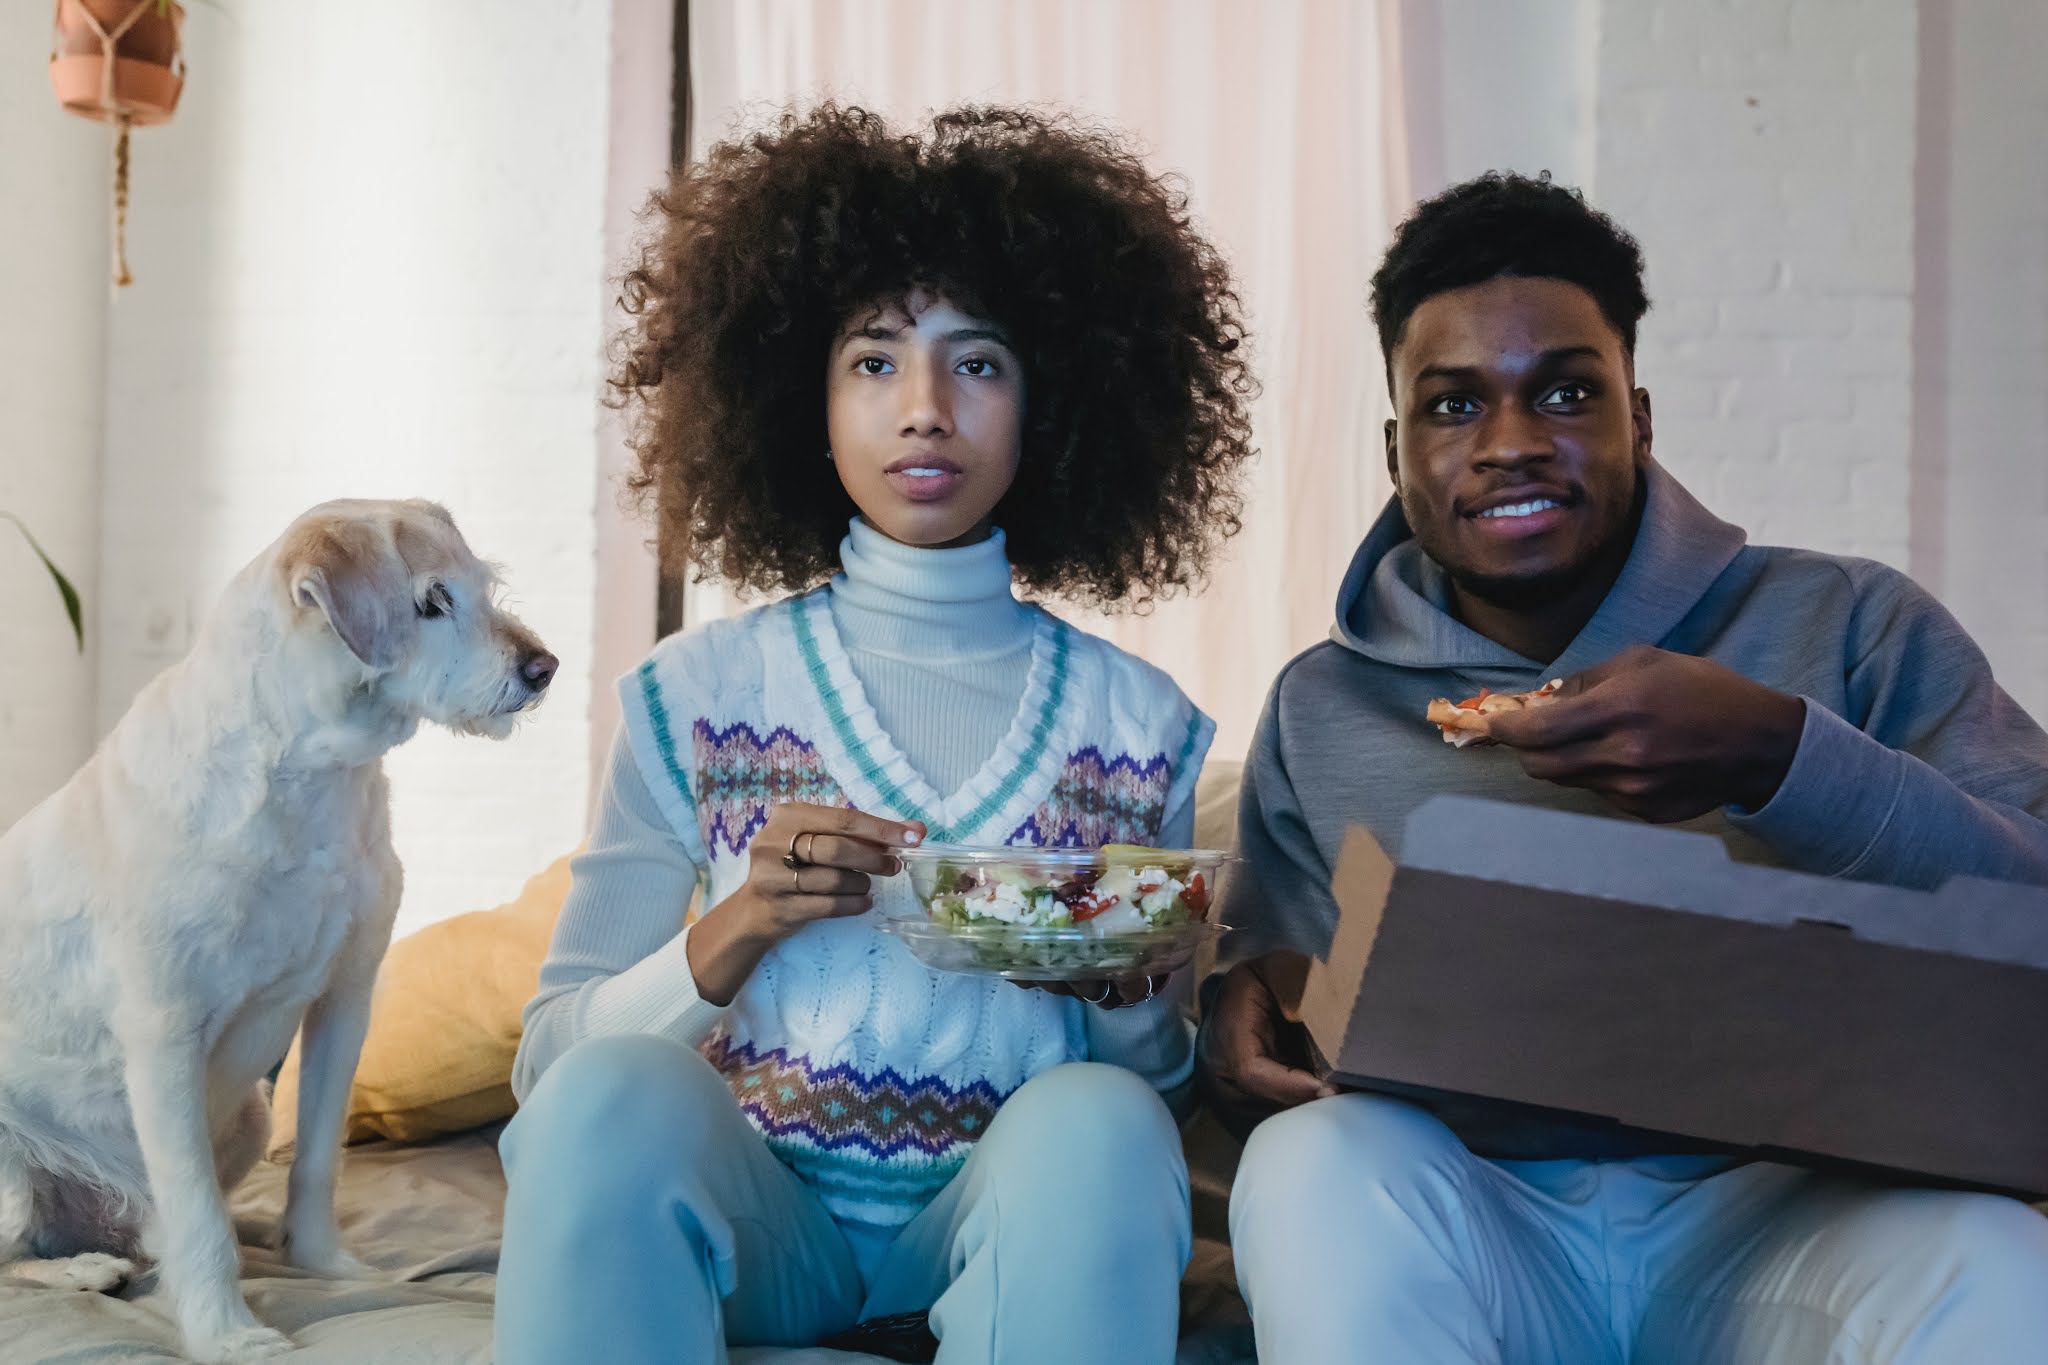 Two adults eating popcorn and watching TV with dog. Photo by Andres Ayrton from Pexels